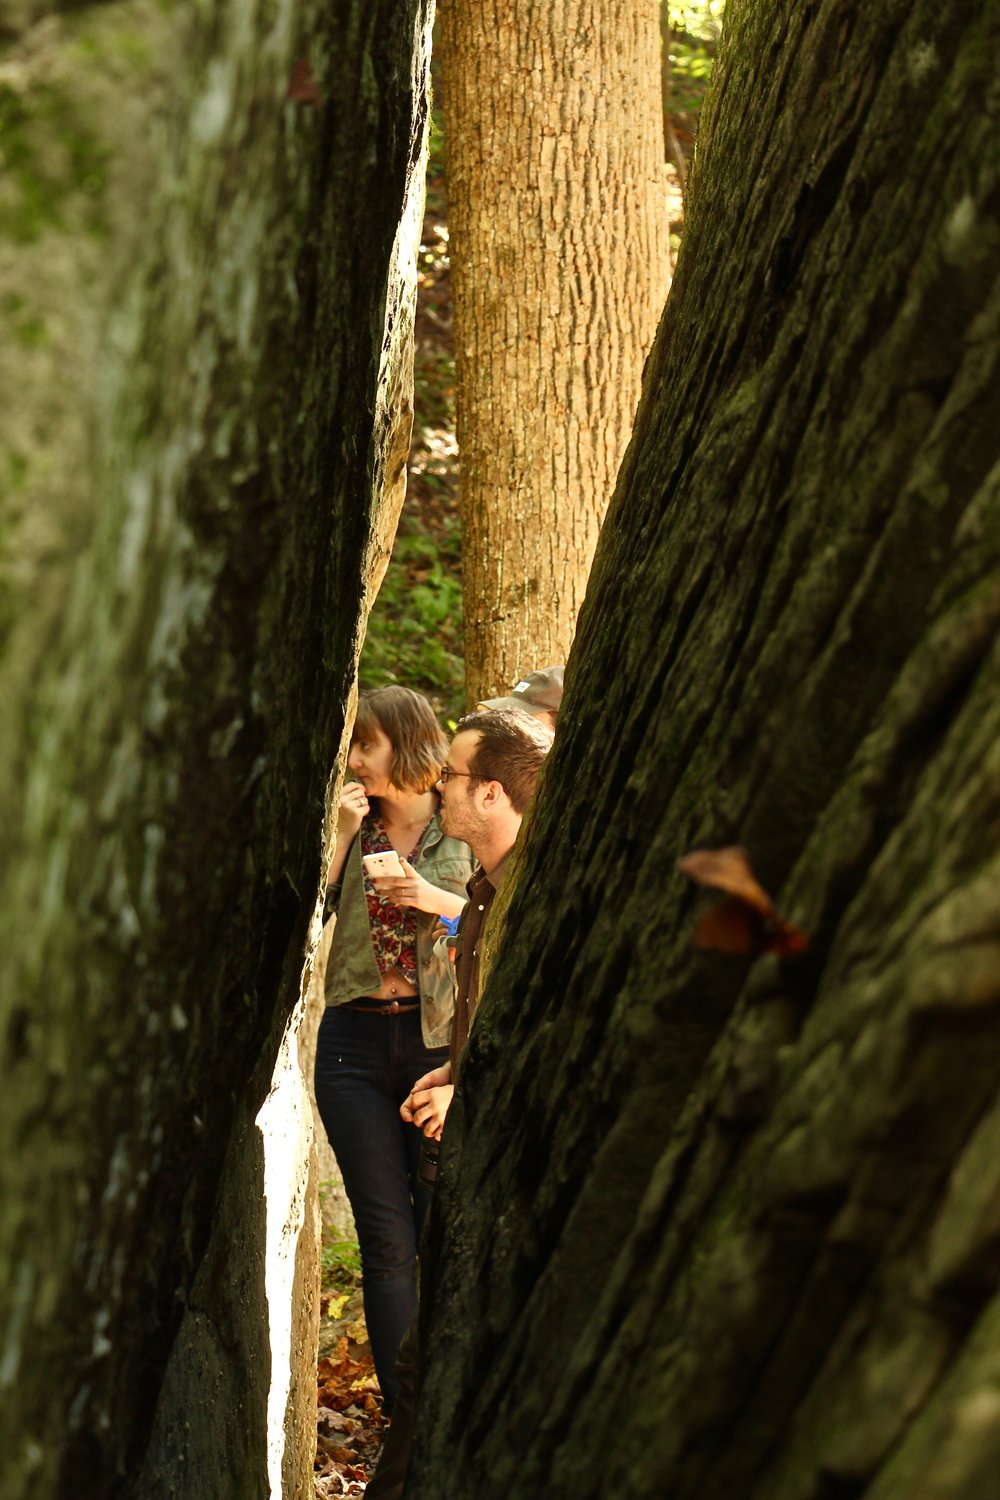 Cara Copper and Tyler McDaniel through the crevice of Split Rock.